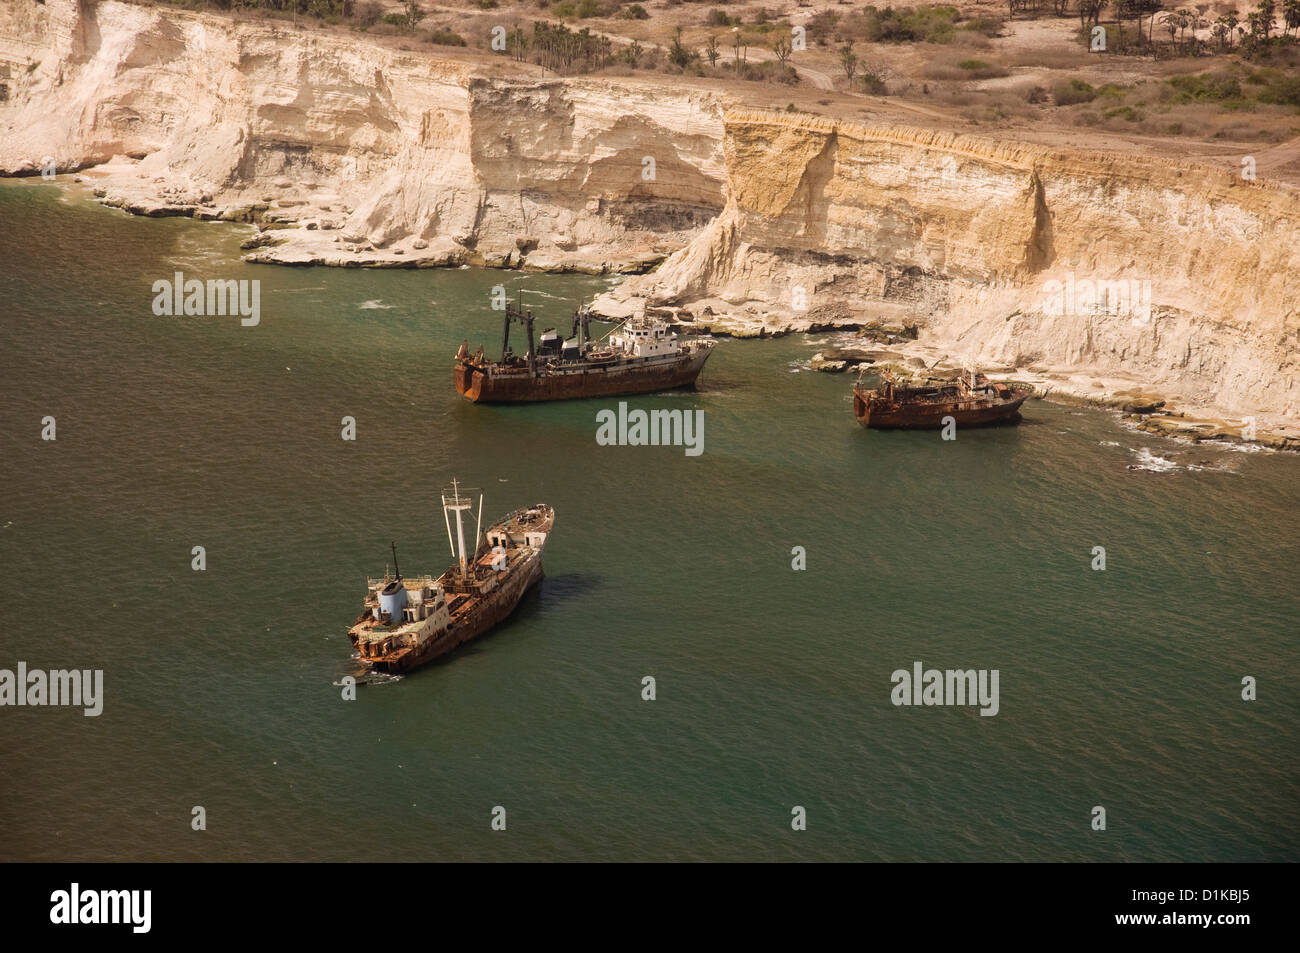 Aerial photo of abandoned fishing vessels and boats off the coast of Angola, north of the capital Luanda. - Stock Image